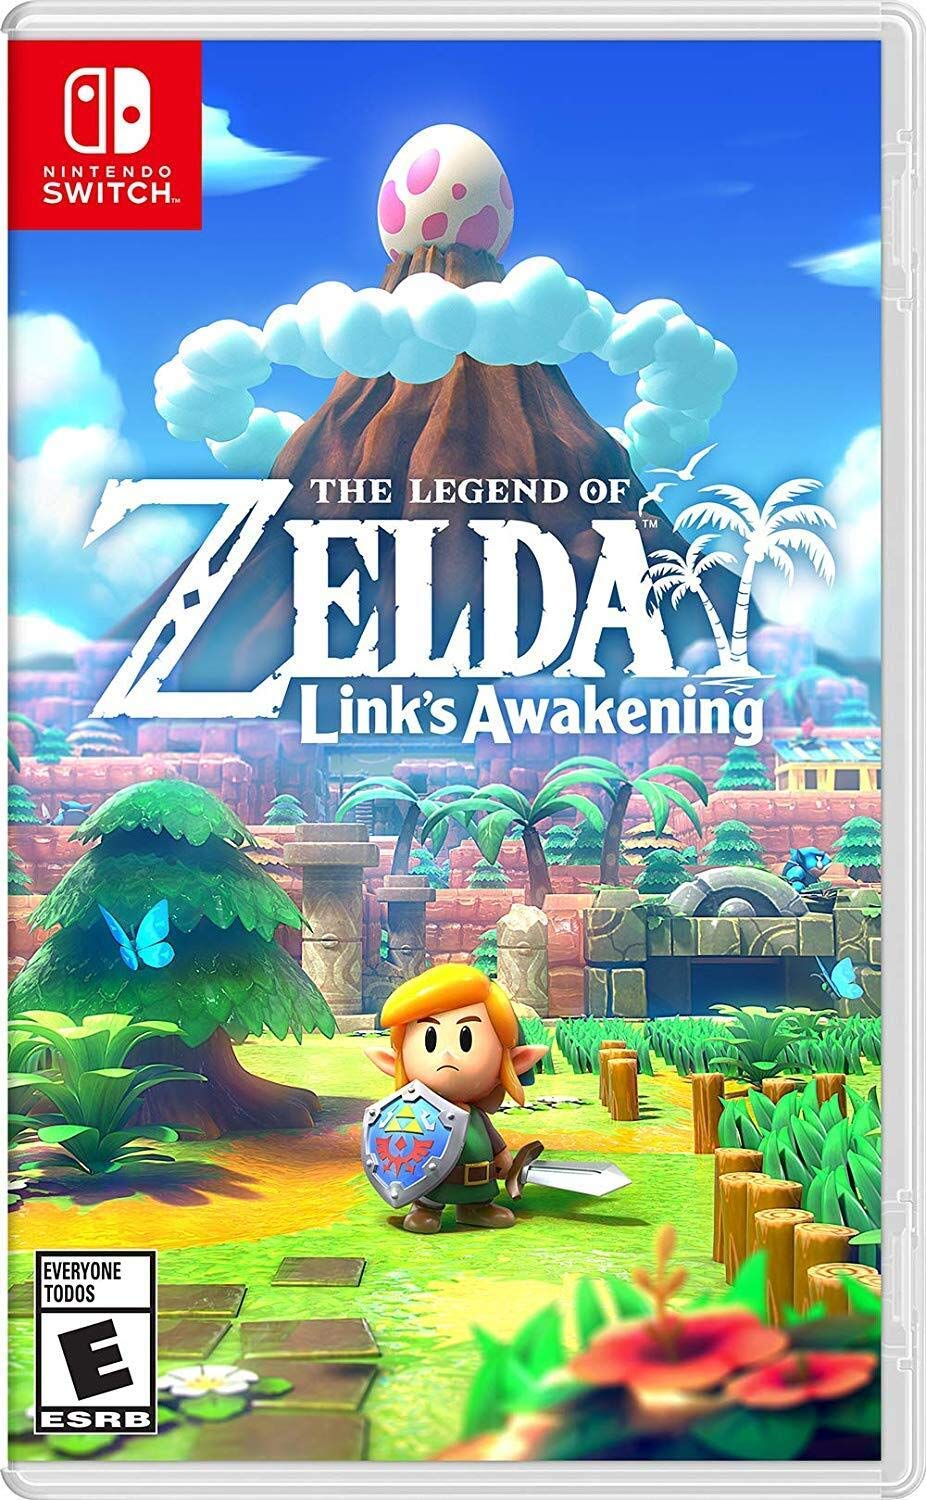 The Legend of Zelda: Link's Awakening by Nintendo